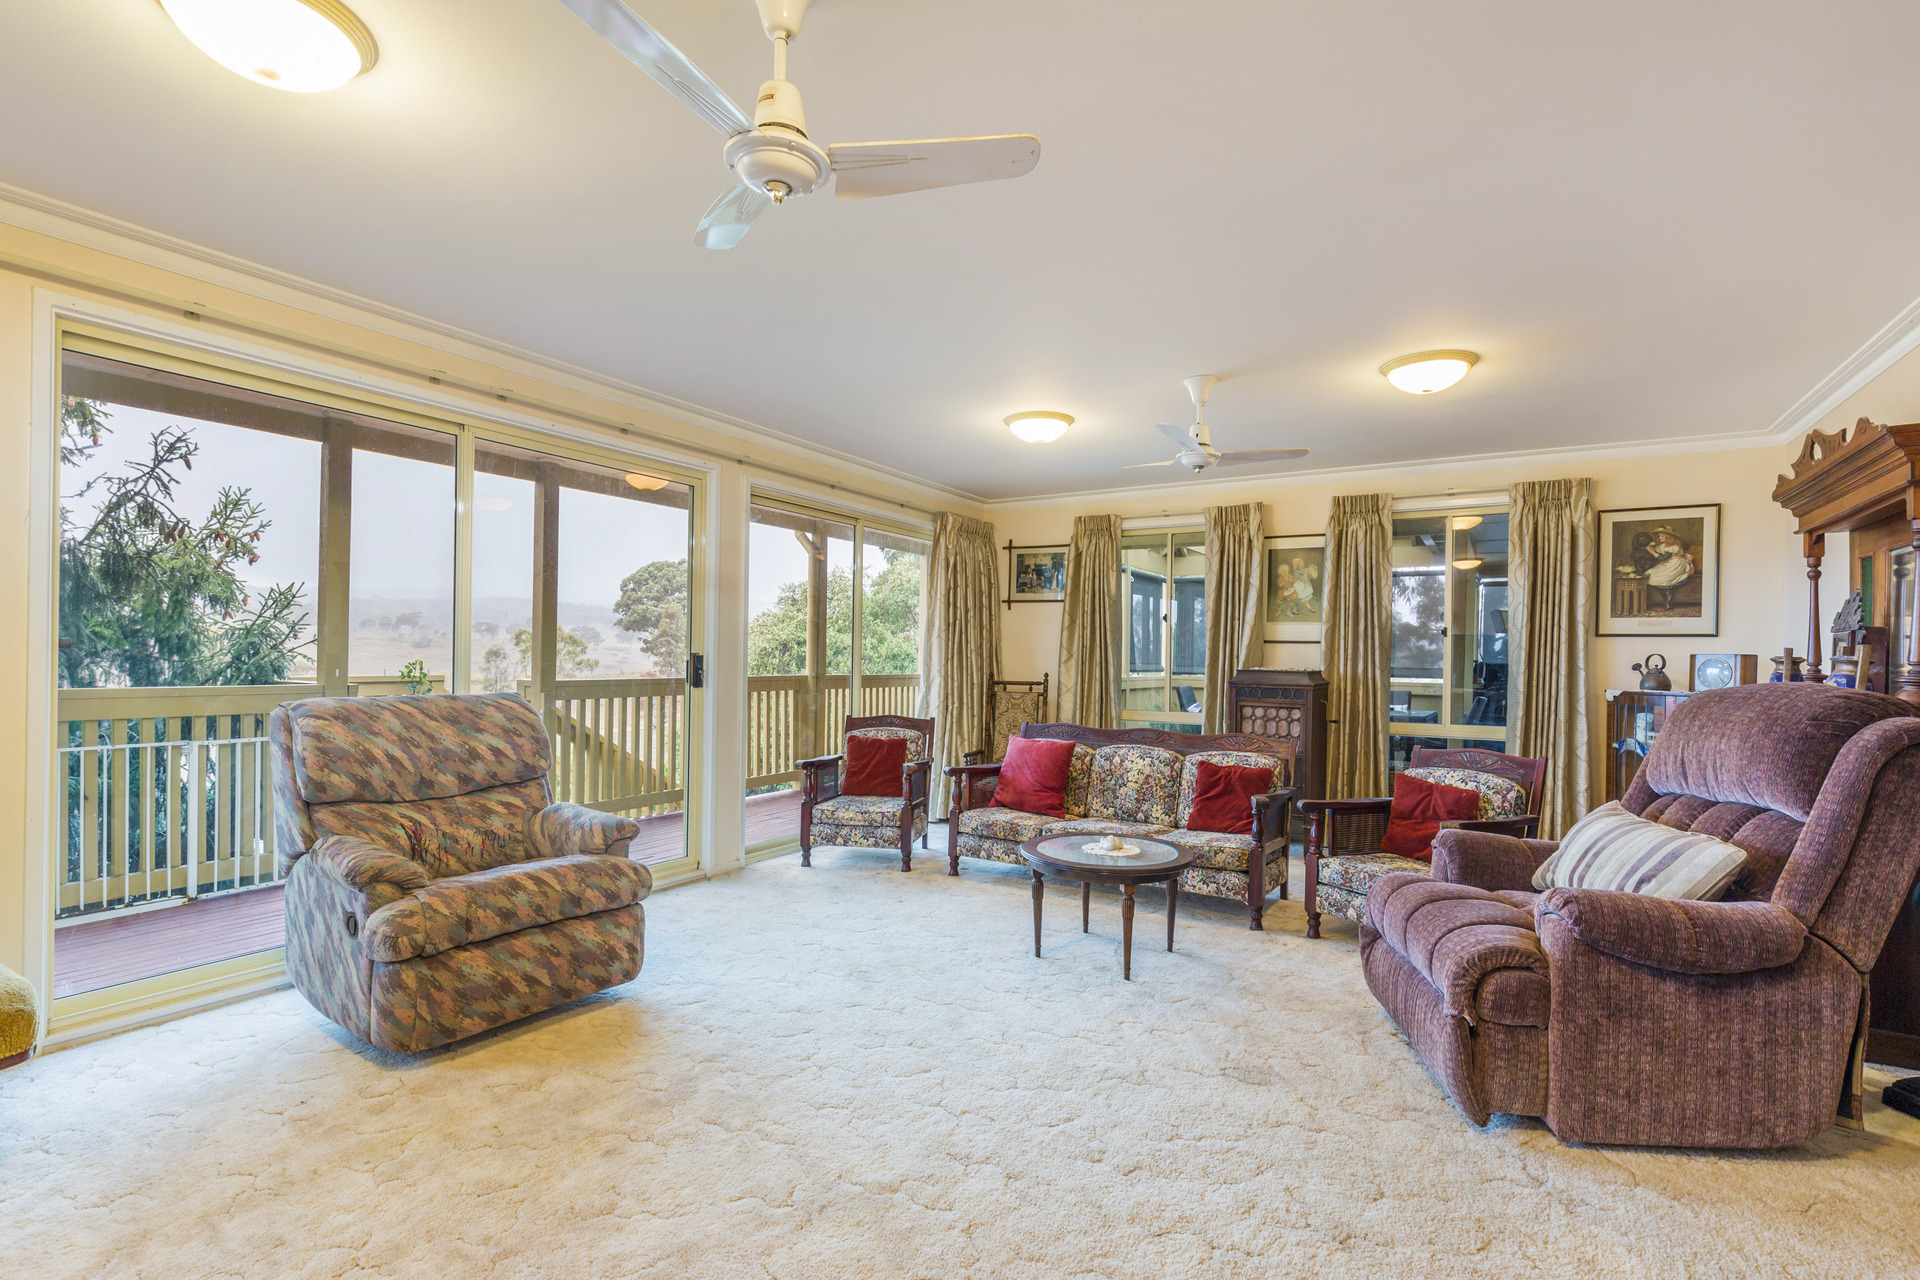 Property for sale in Bywong NSW